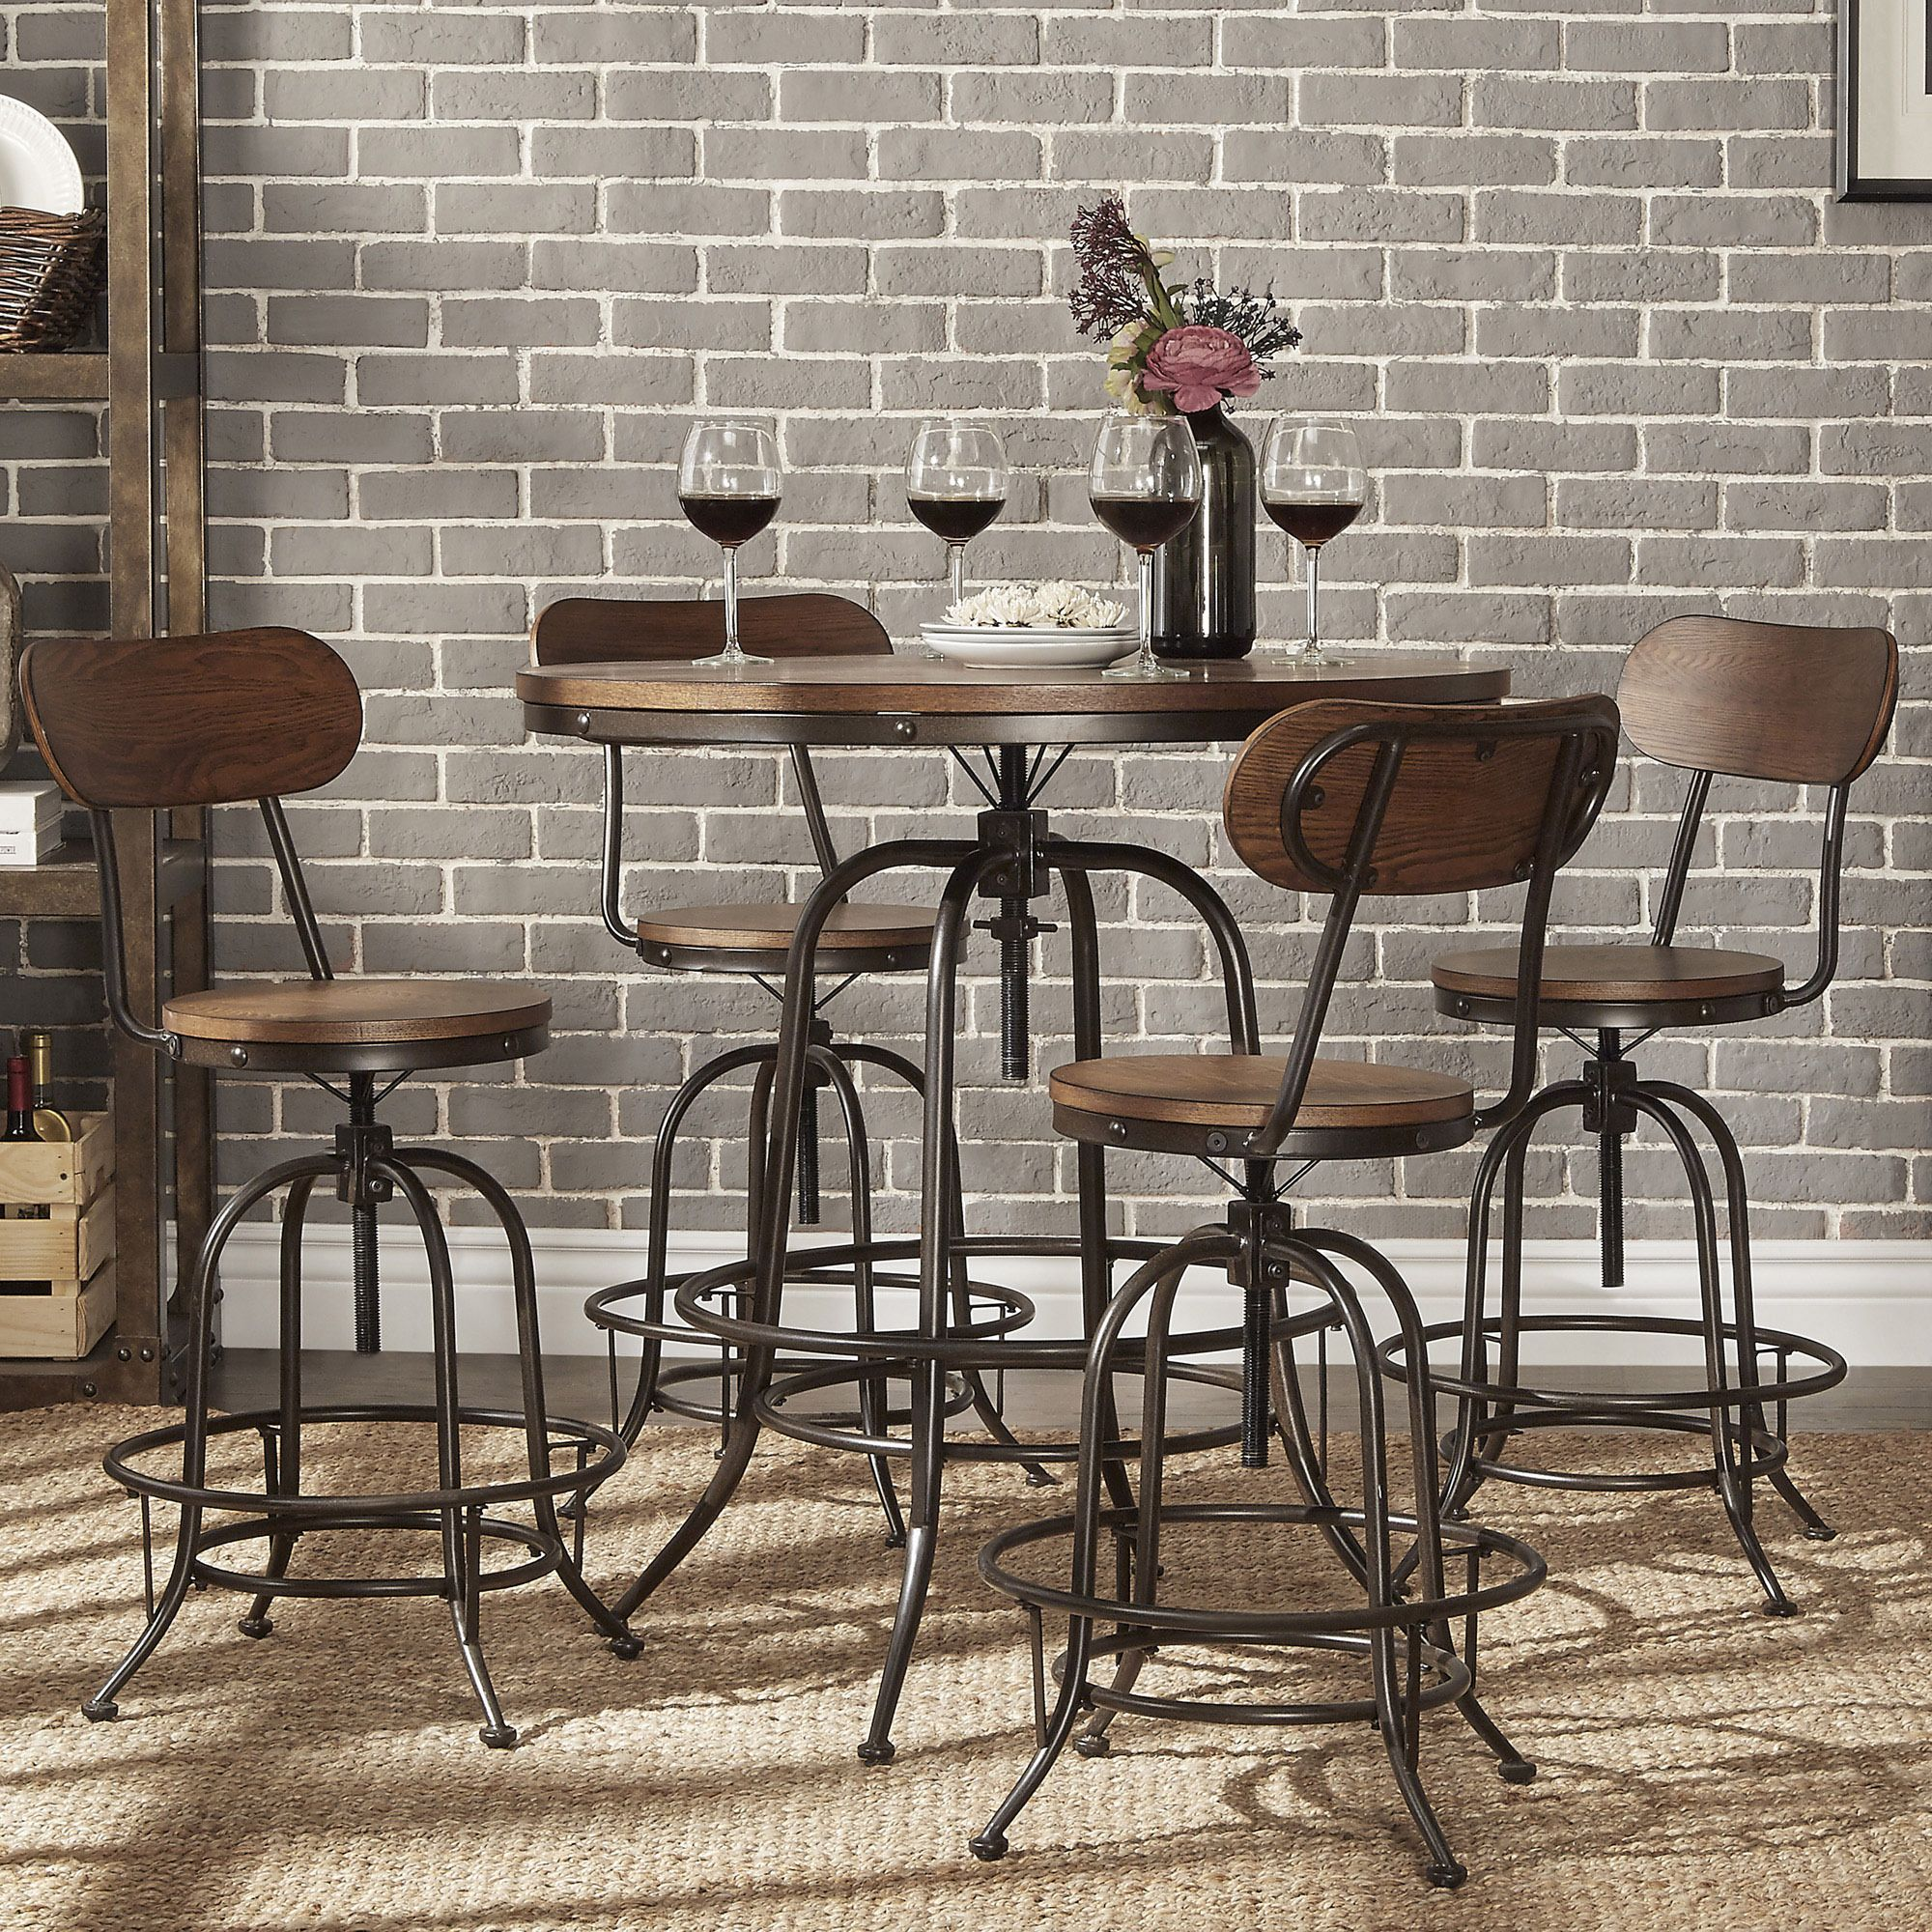 Nice Kitchen Table Sets: Berwick Industrial Style Round Counter-height Pub